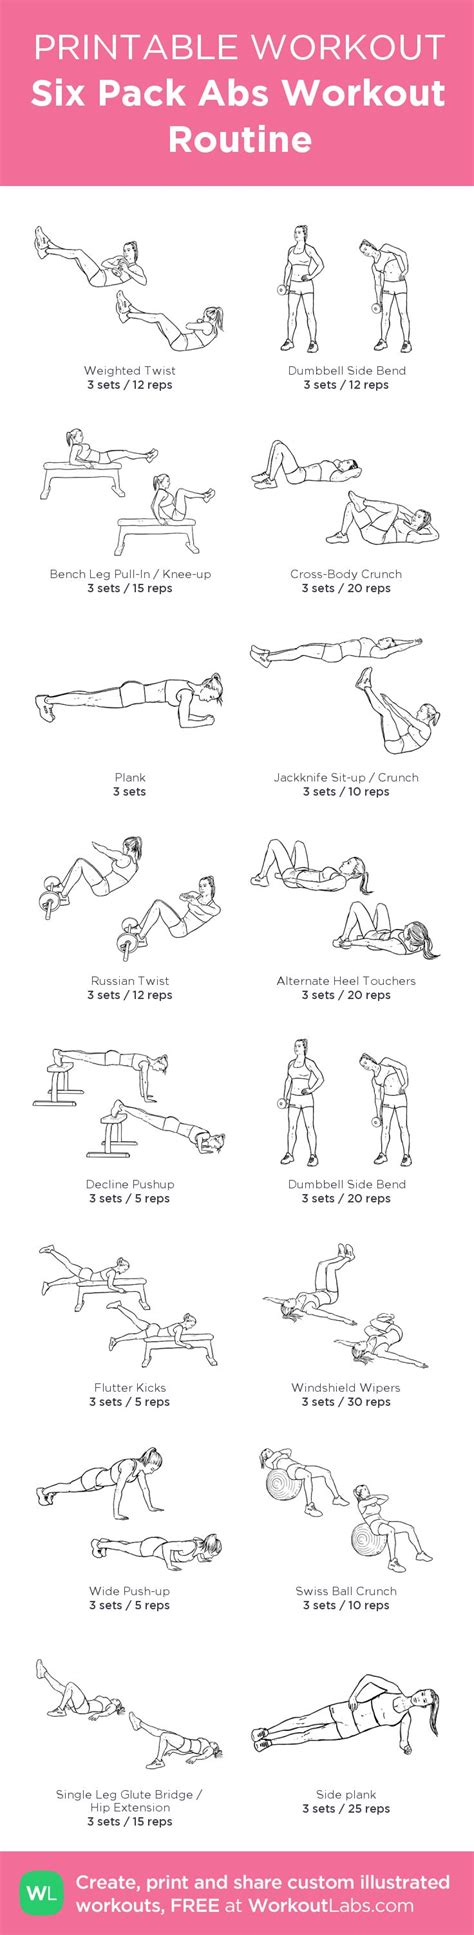 six pack abs workout routine my custom printable workout